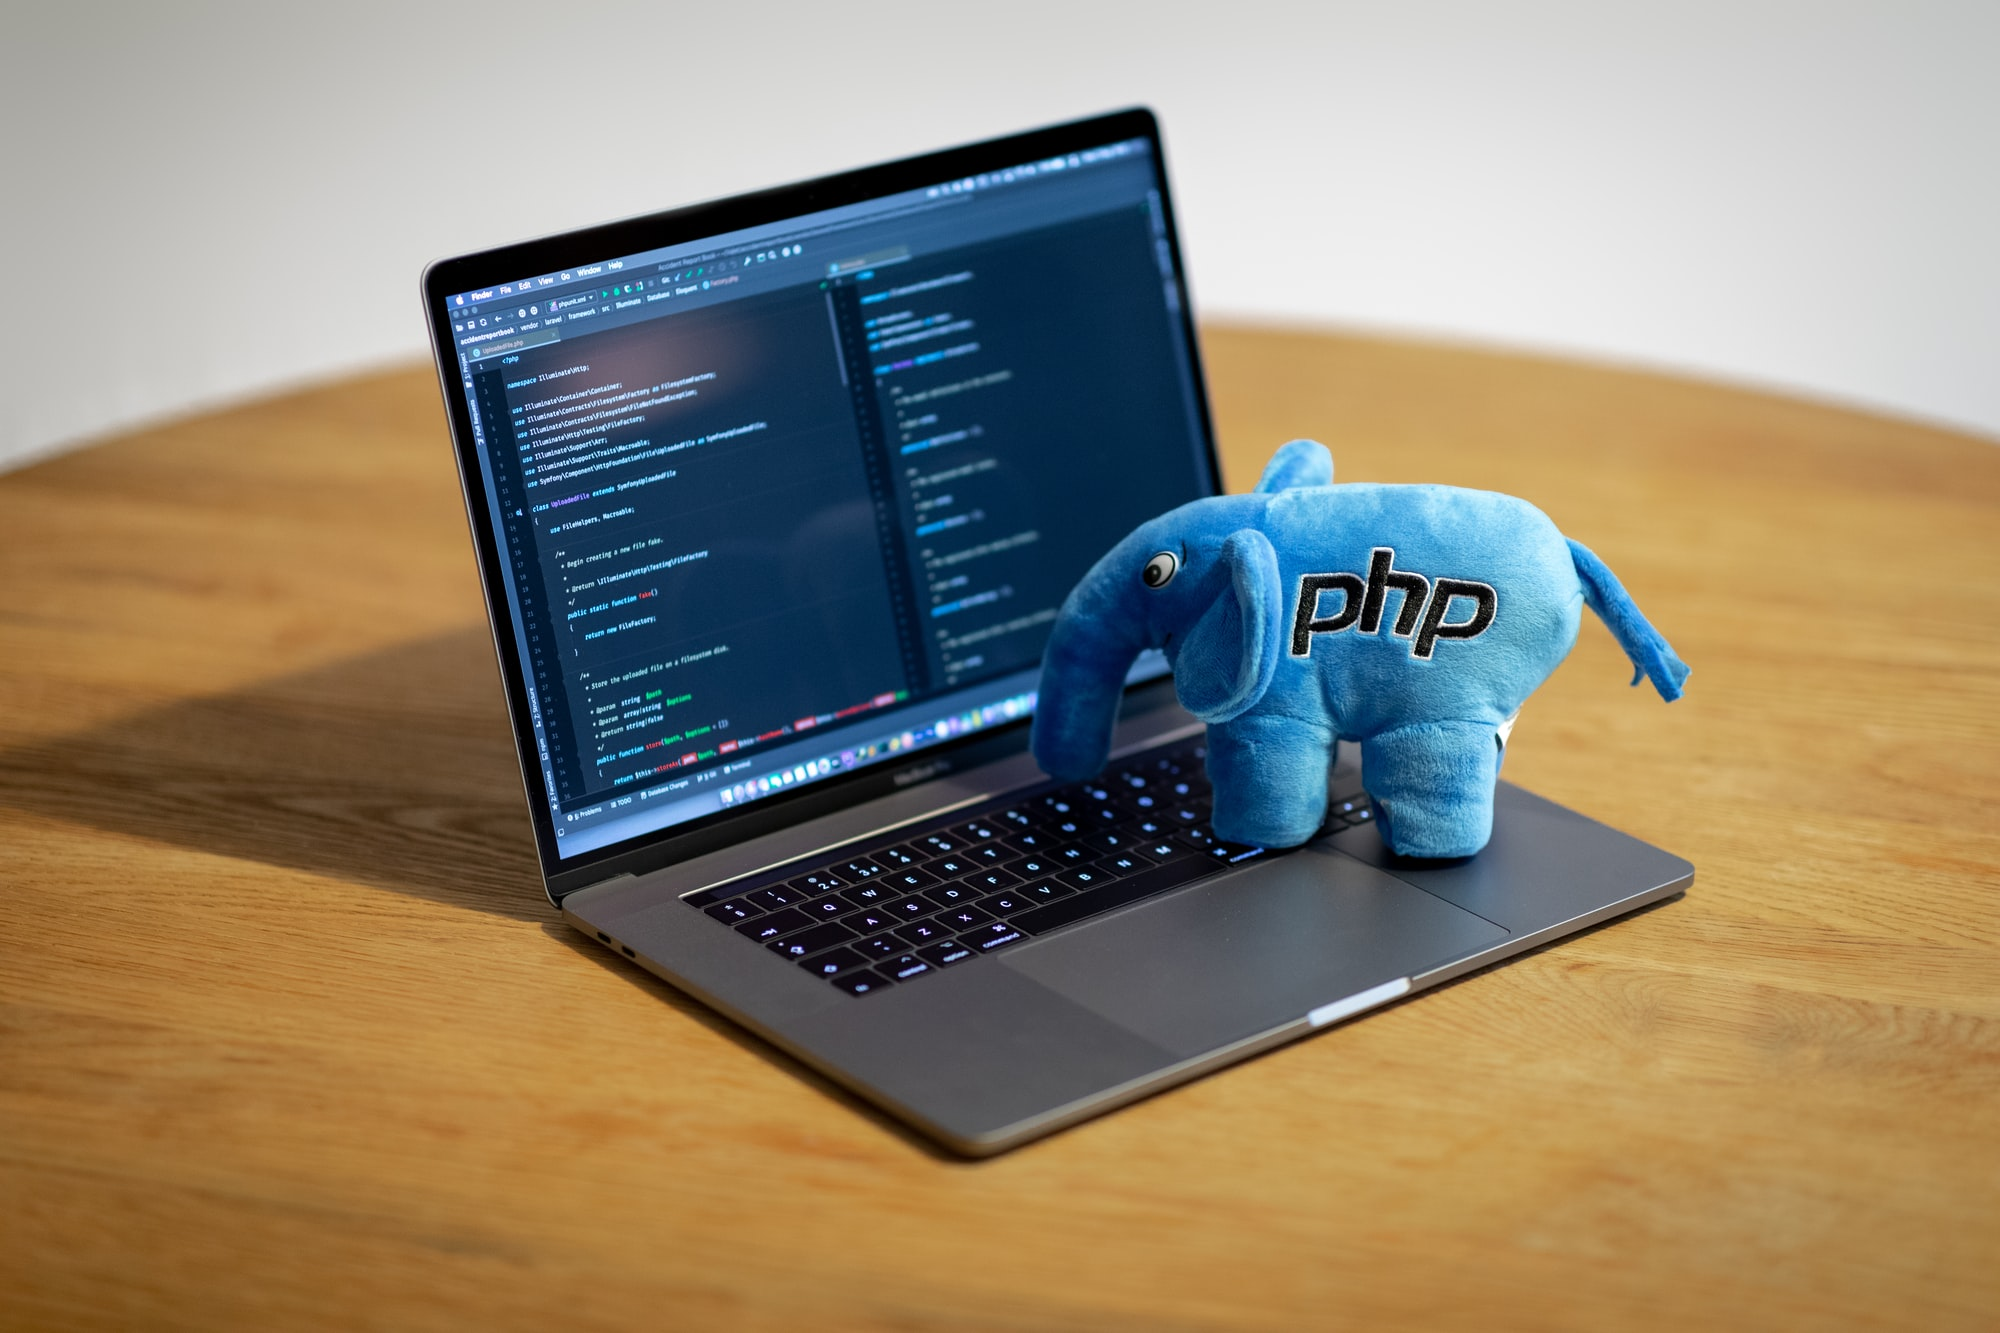 Upgrade to PHP 5.6 on Debian 7